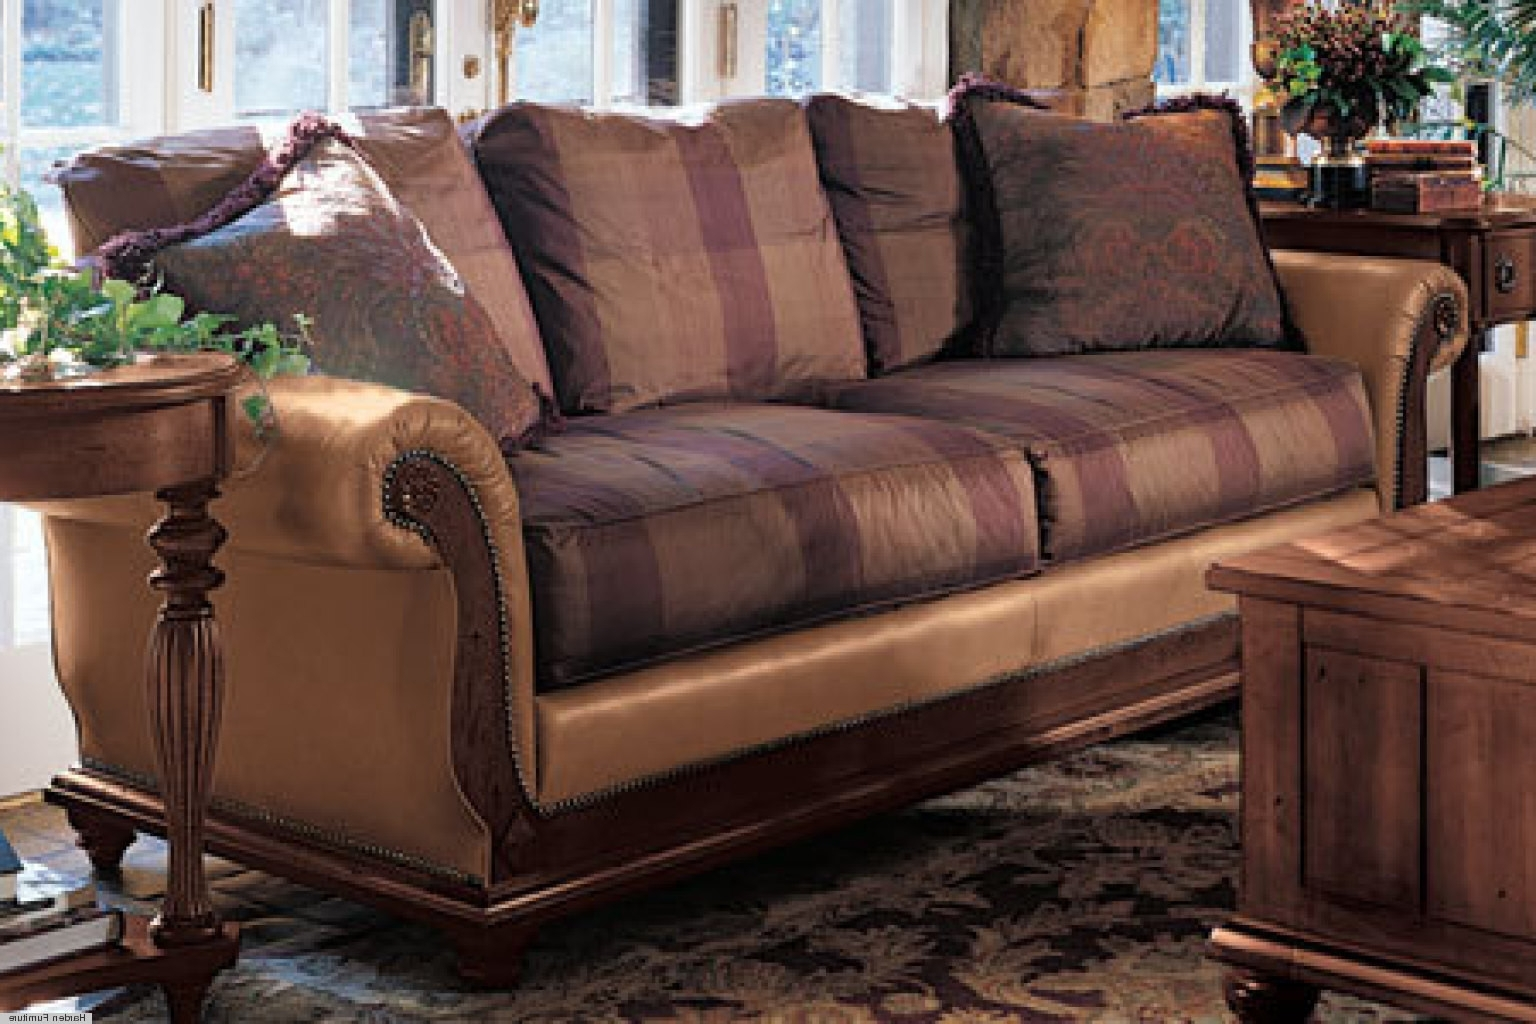 Sectional Sofa Colorado Furniture Row Coupons Sofa Bed Denver Inside Well Liked Furniture Row Sectional Sofas (View 12 of 15)